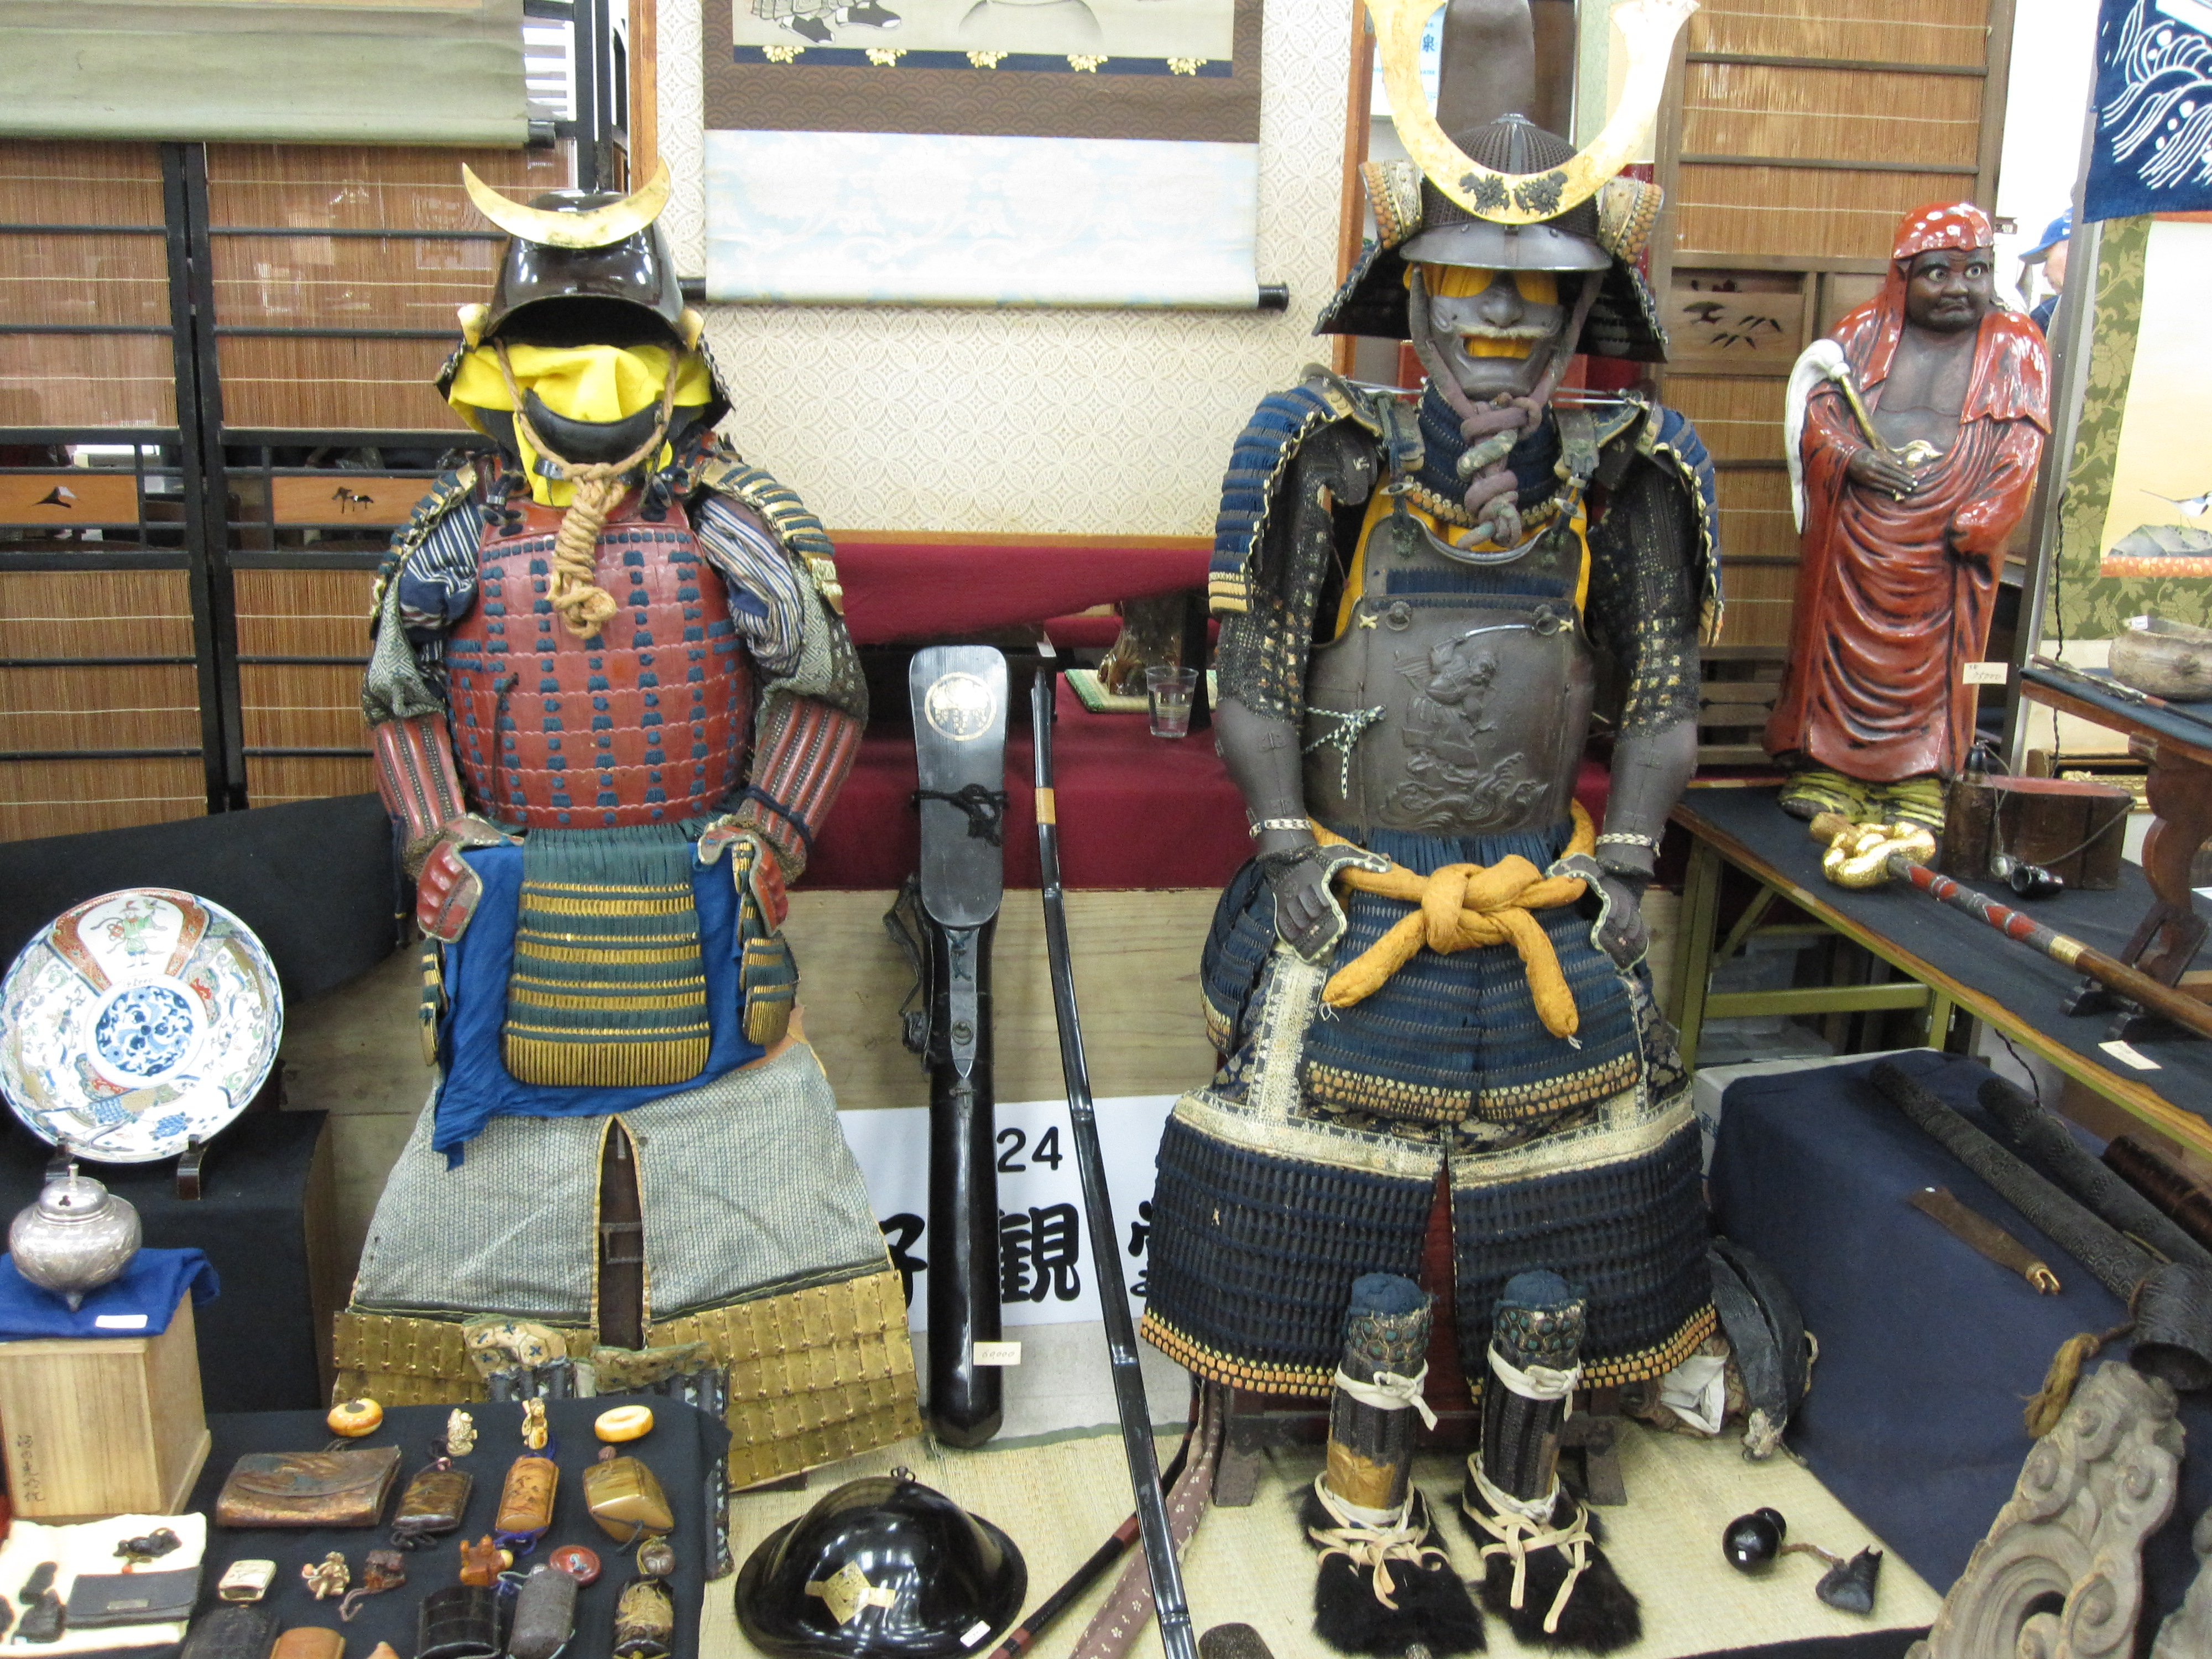 Thumbs Up Or Down Samurai Armor In The Home